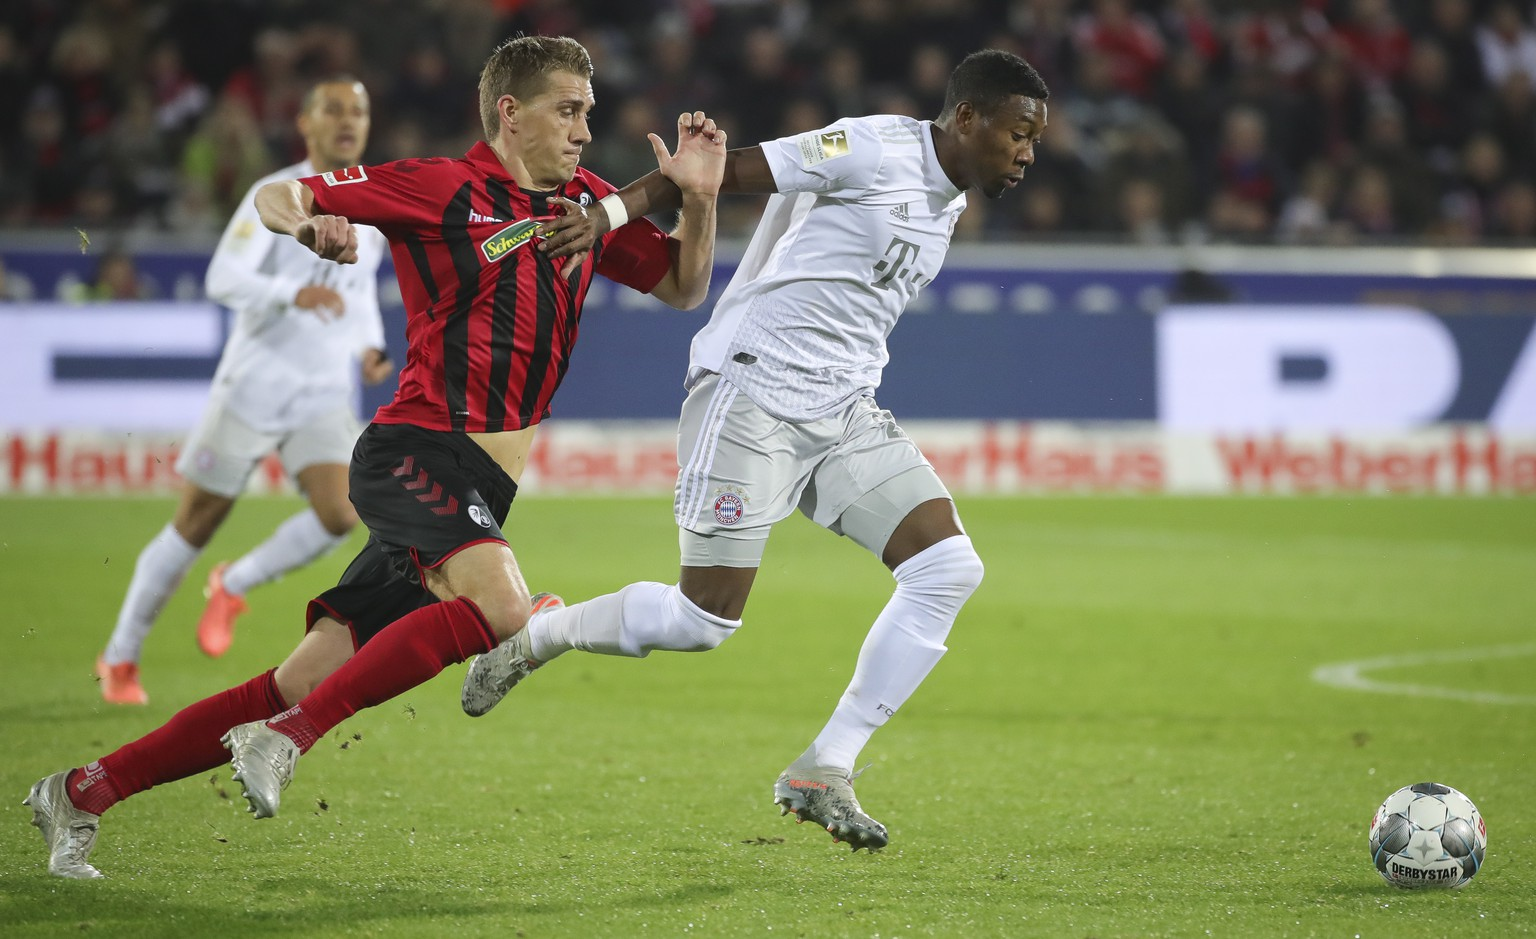 epa08080238 Freiburg's Nils Petersen (L) in action against Bayern's David Alaba (R) during the German Bundesliga soccer match between SC Freiburg vs FC Bayern Munich in Freiburg, Germany, 18 December 2019.  EPA/ARMANDO BABANI CONDITIONS - ATTENTION: The DFL regulations prohibit any use of photographs as image sequences and/or quasi-video.